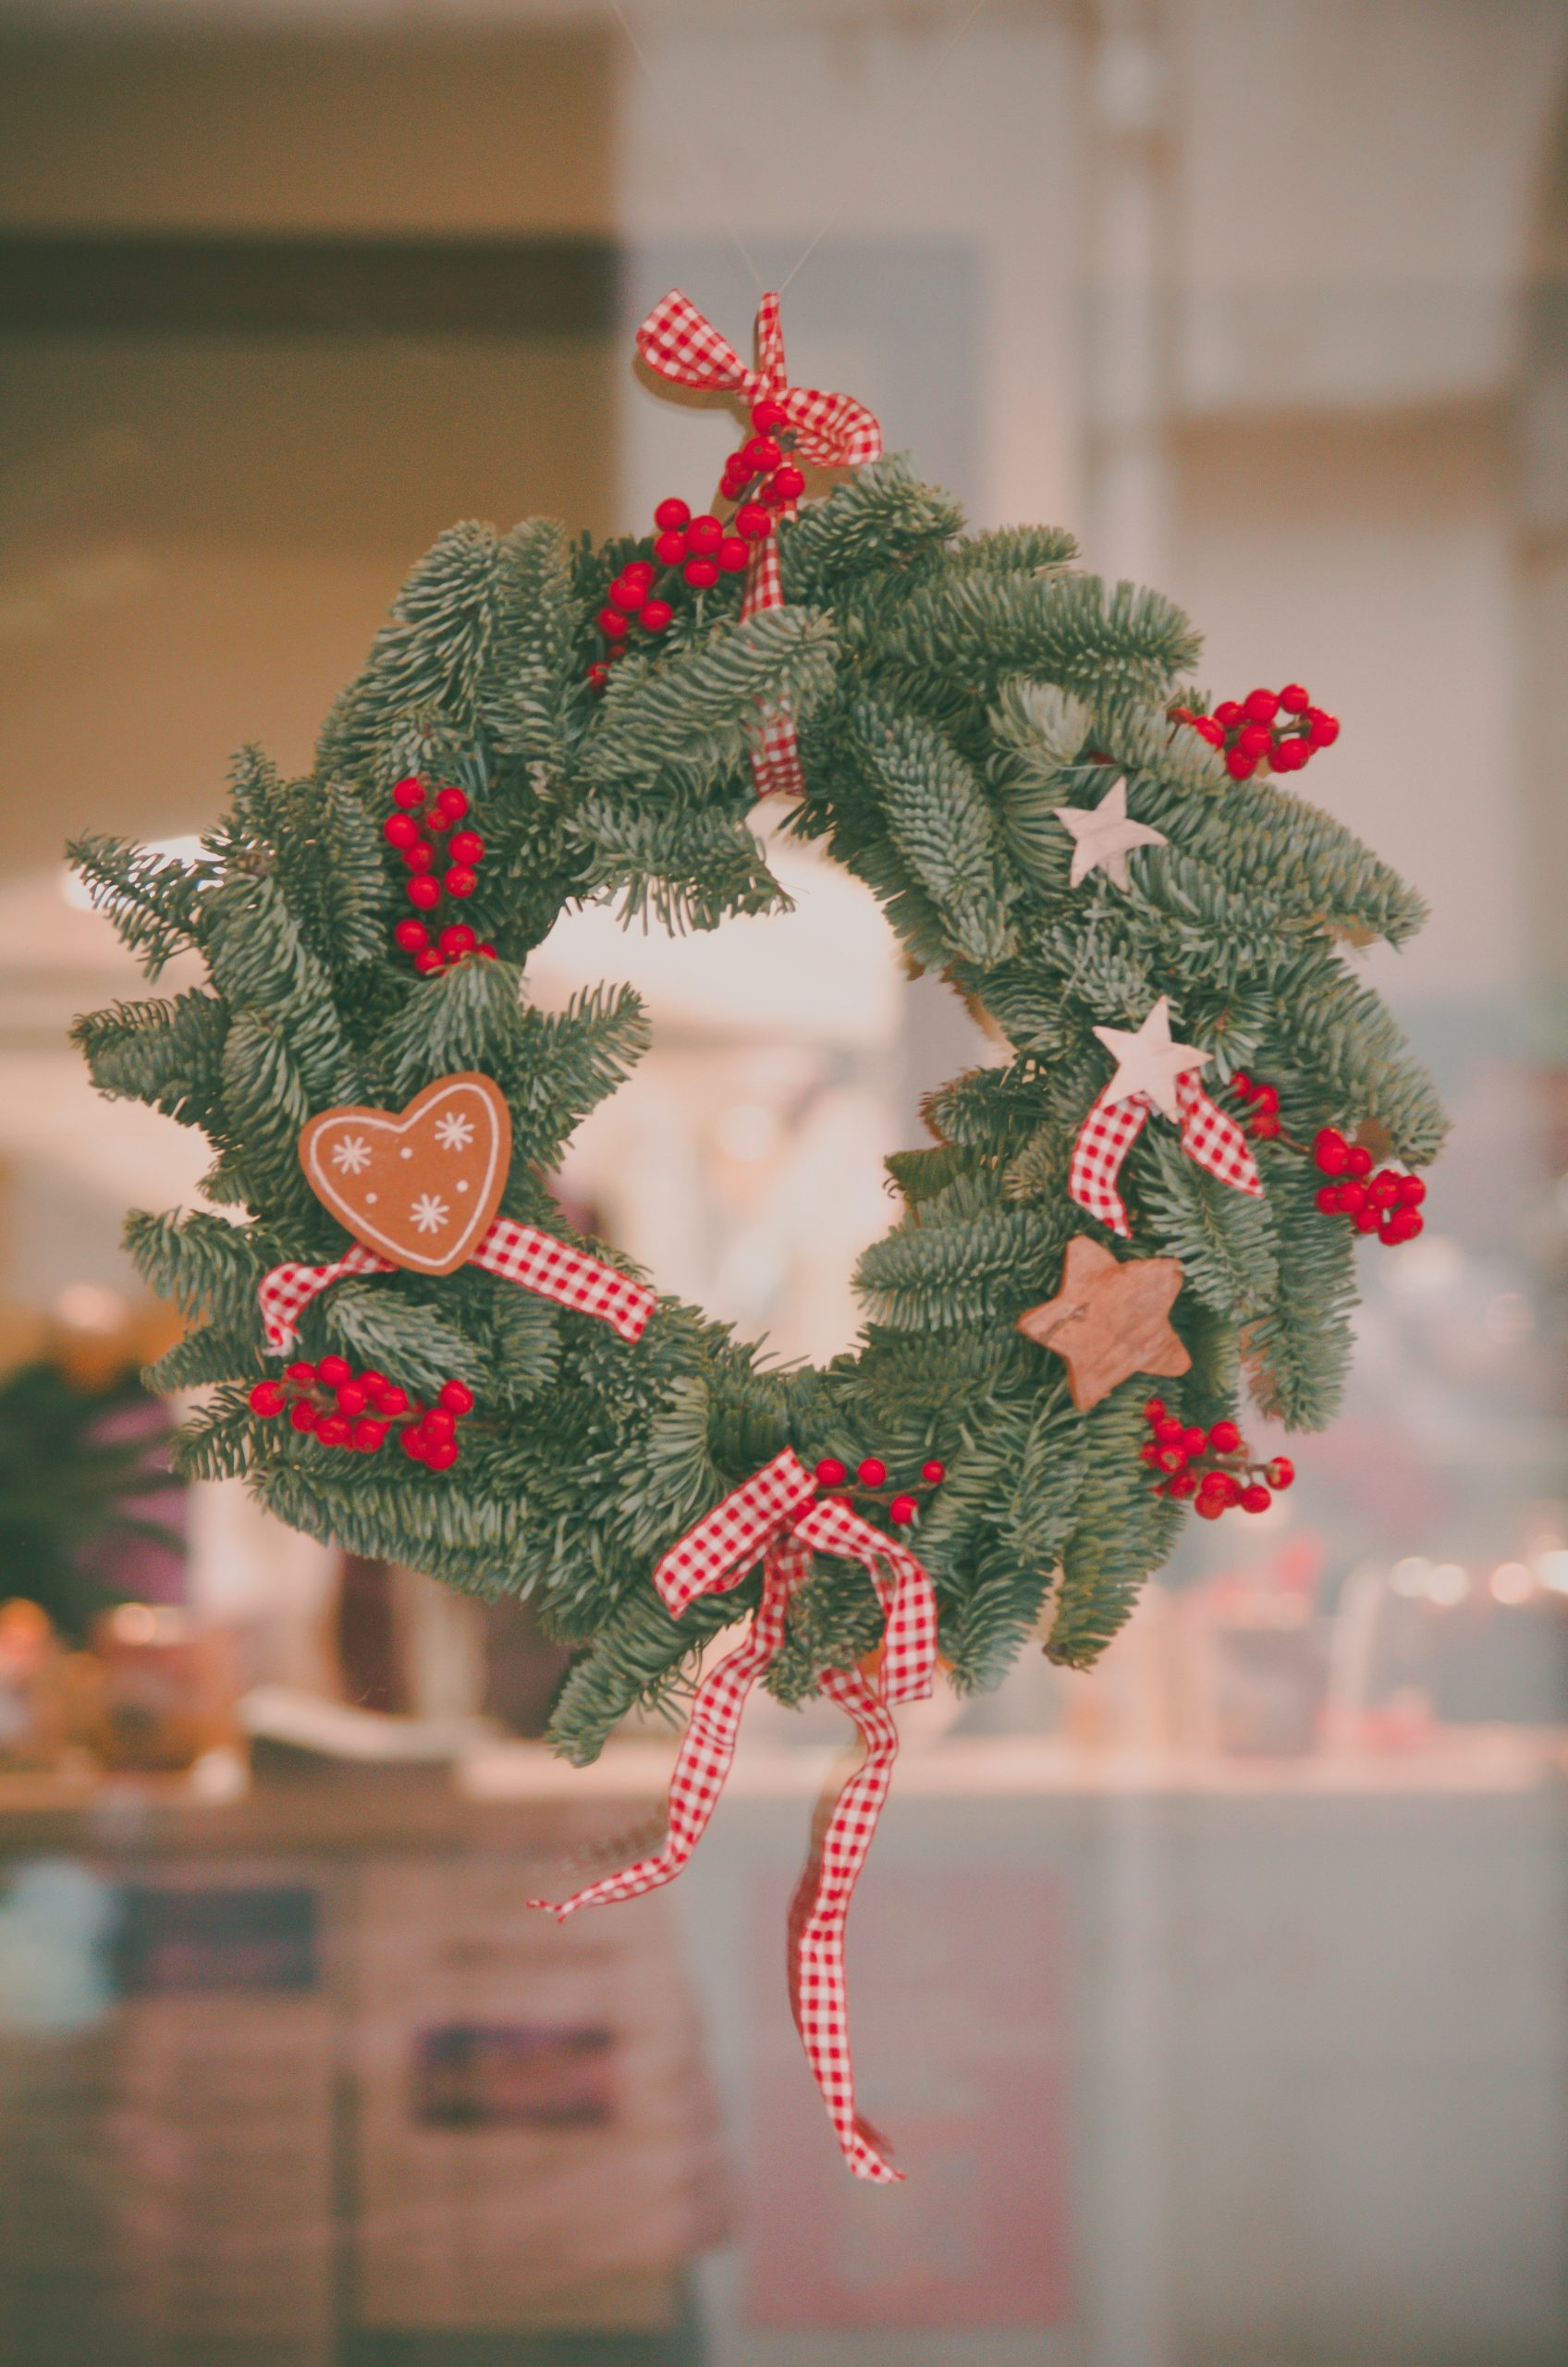 Amazing Self Care Tips To Practice This Christmas